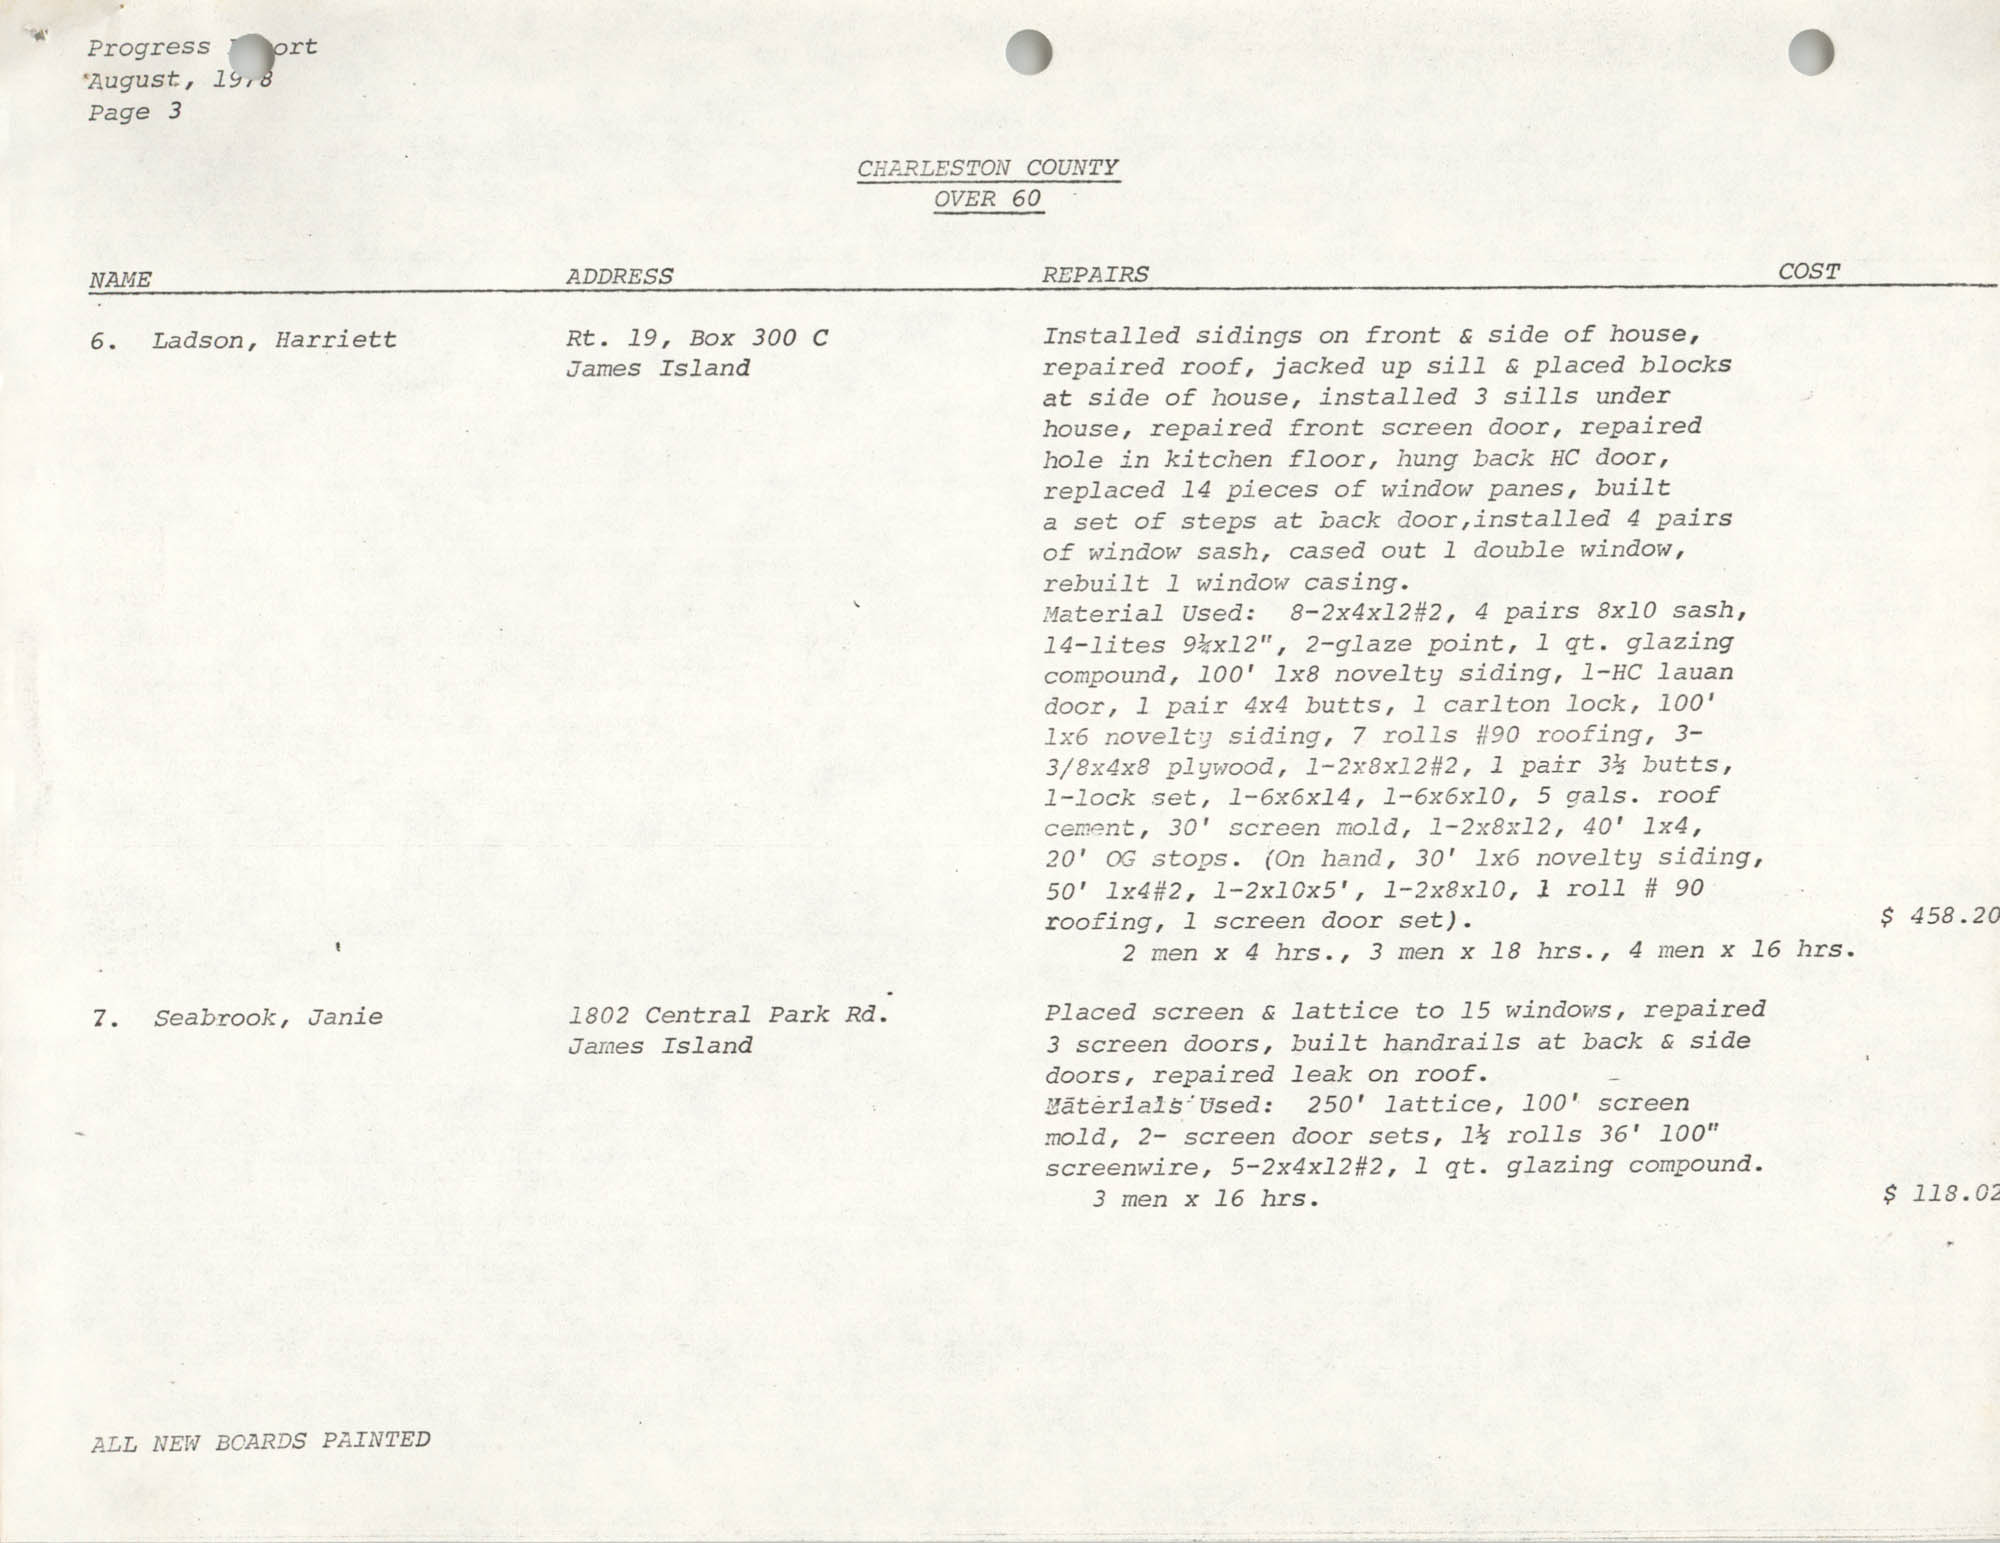 Housing Assistance Program Report, August 1978, Page 3